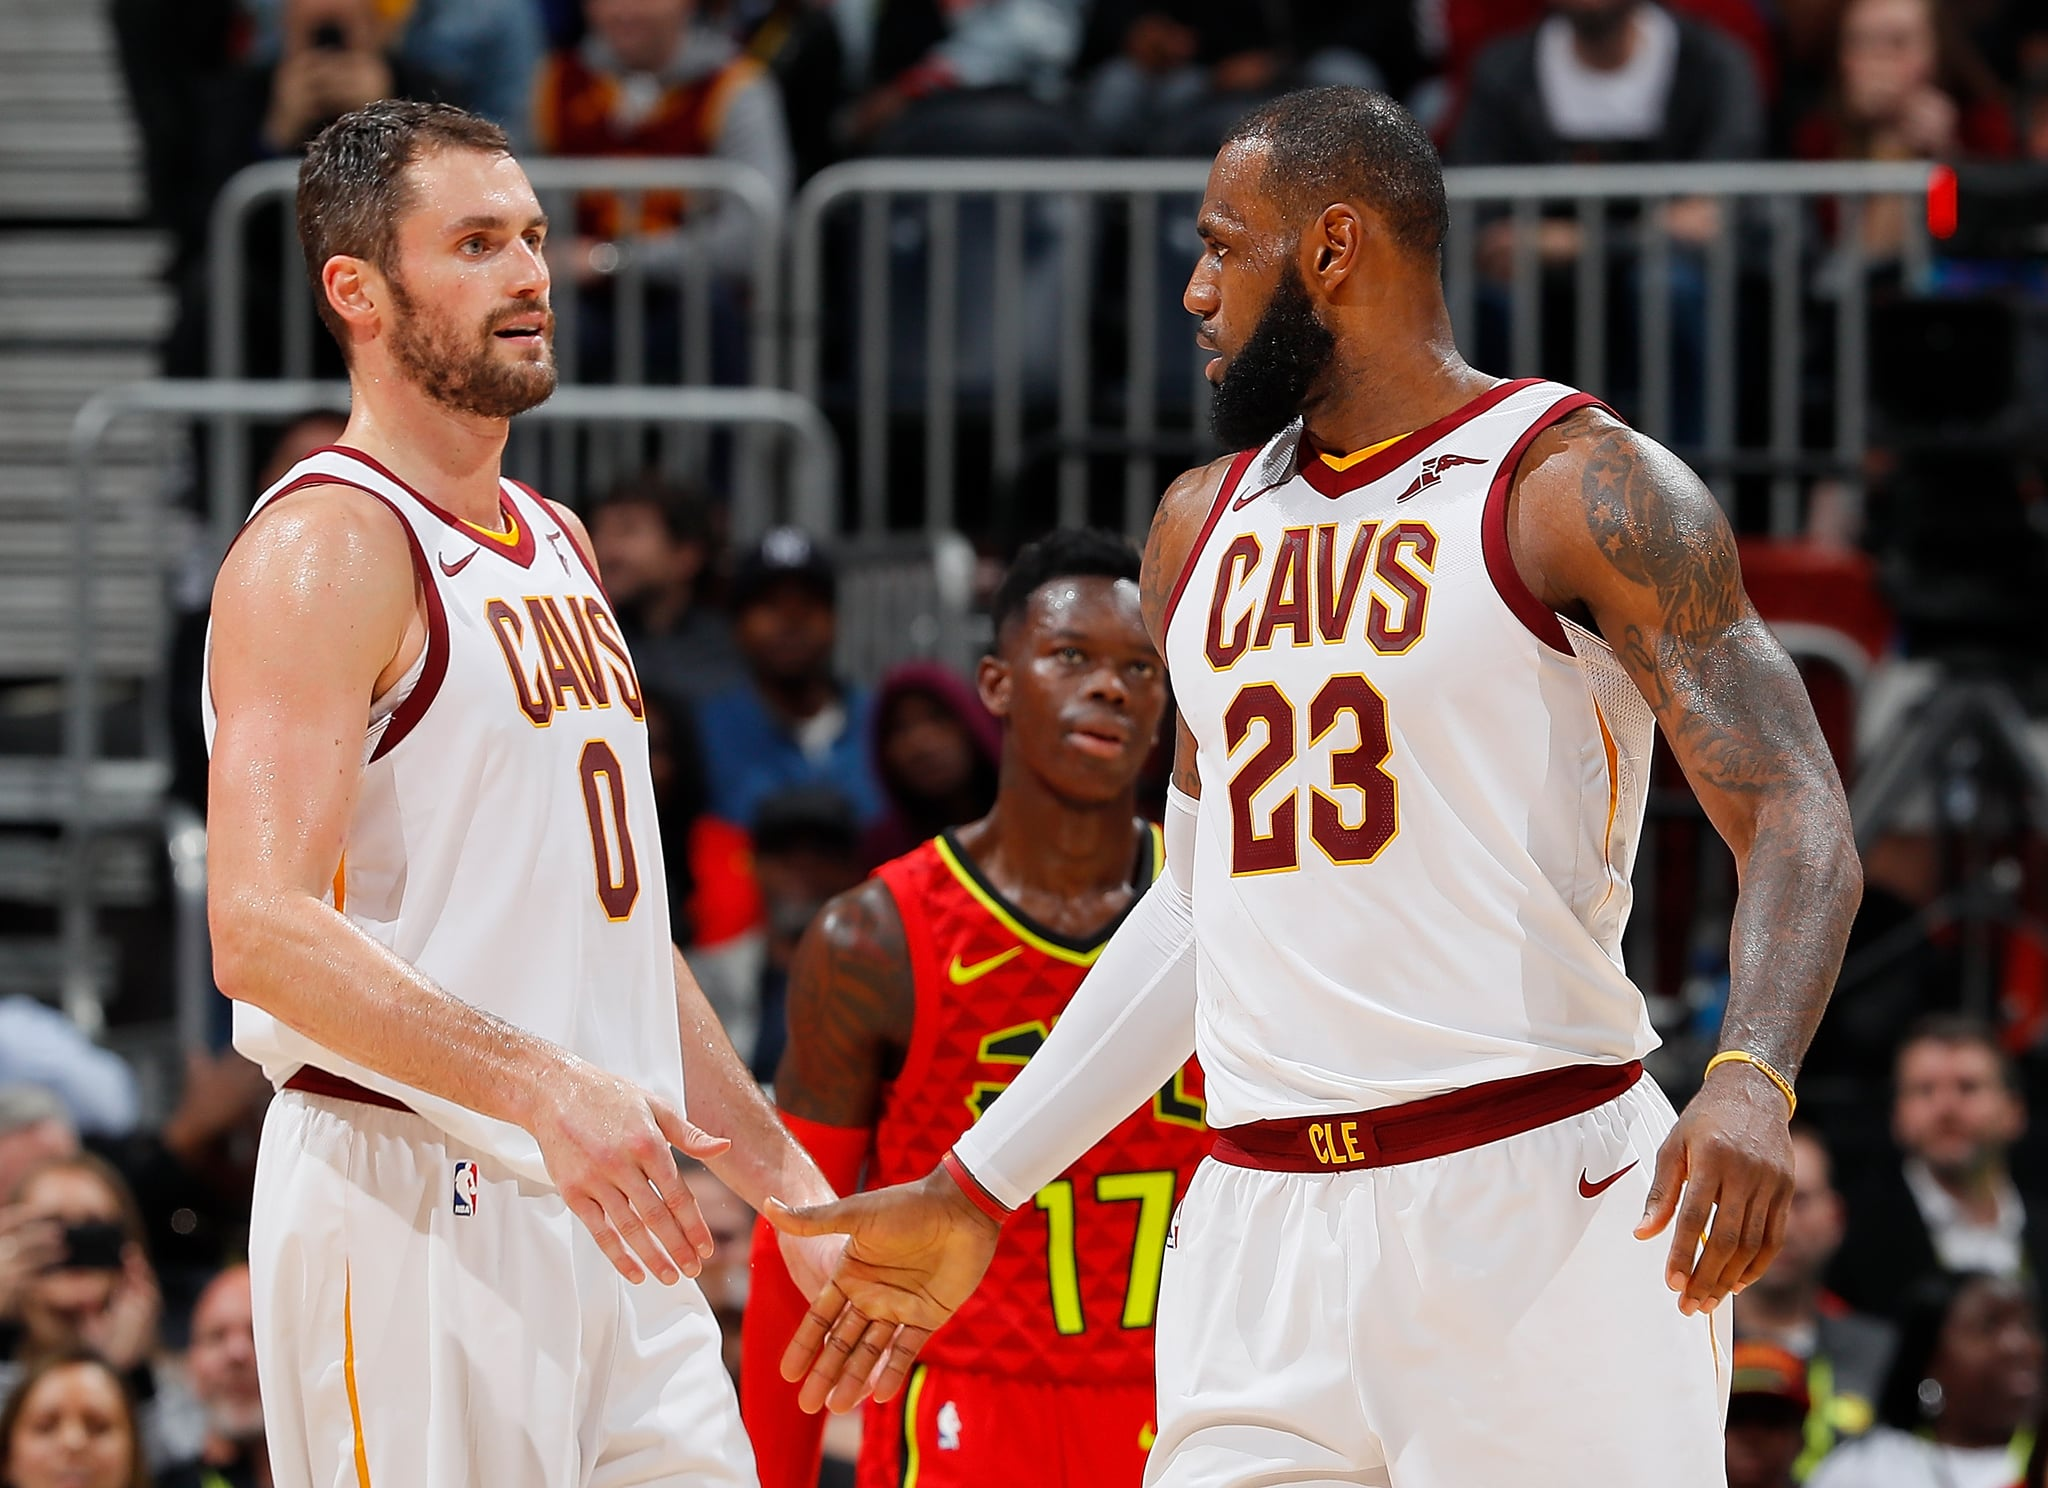 ATLANTA, GA - NOVEMBER 30:  LeBron James #23 of the Cleveland Cavaliers reacts with Kevin Love #0 after drawing a foul against the Atlanta Hawks at Philips Arena on November 30, 2017 in Atlanta, Georgia.  NOTE TO USER: User expressly acknowledges and agrees that, by downloading and or using this photograph, User is consenting to the terms and conditions of the Getty Images Licence Agreement.  (Photo by Kevin C. Cox/Getty Images)